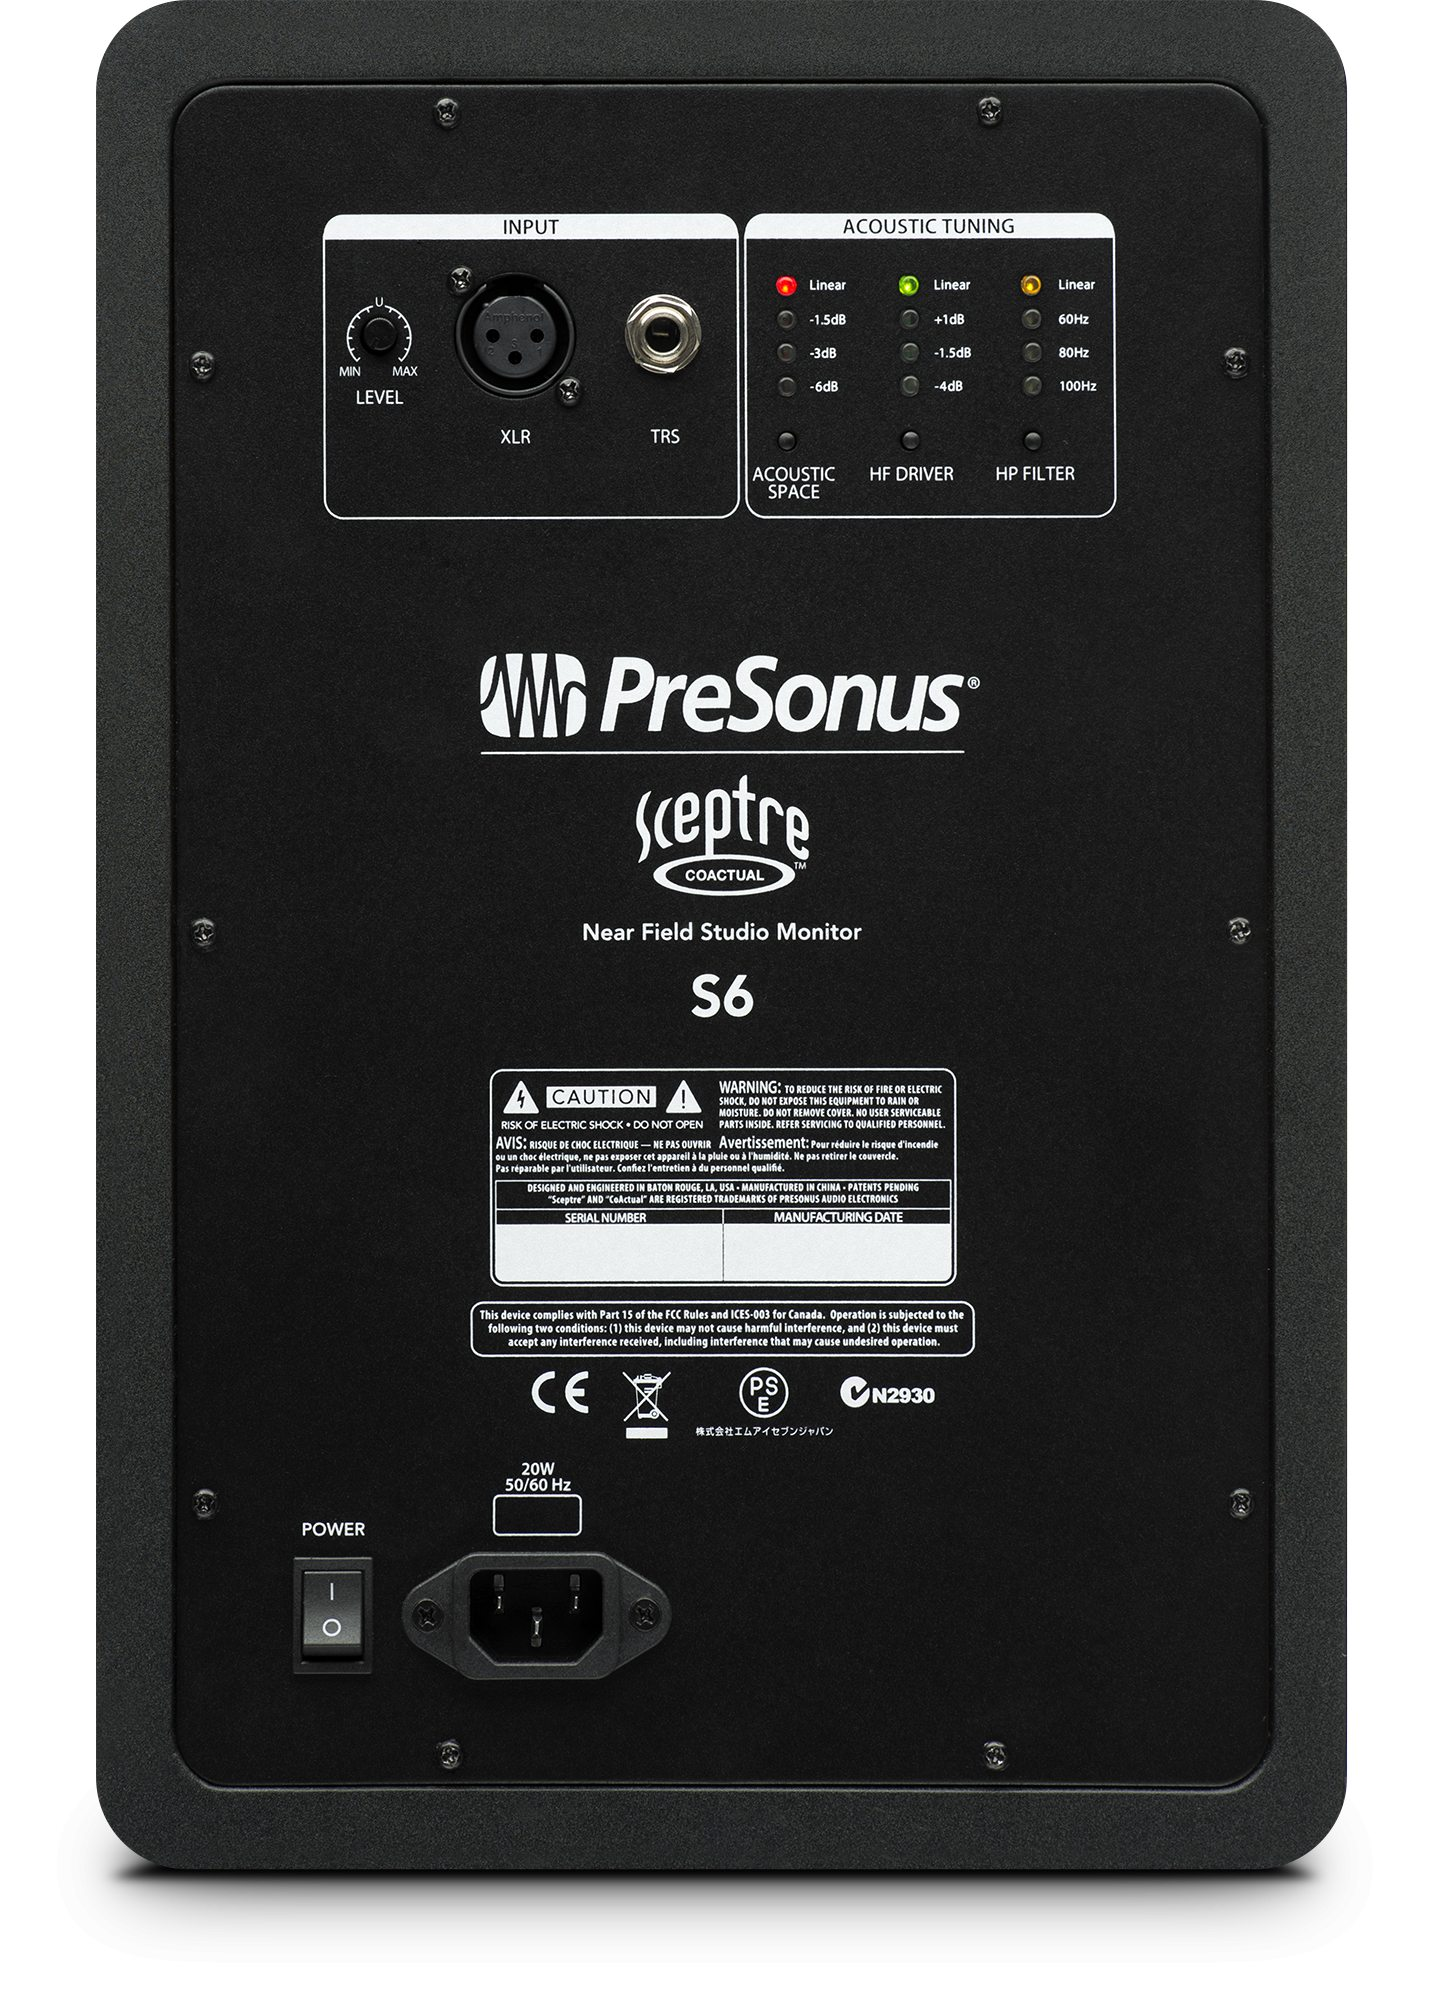 Photo of the back panel of the Presonus Sceptre S6.